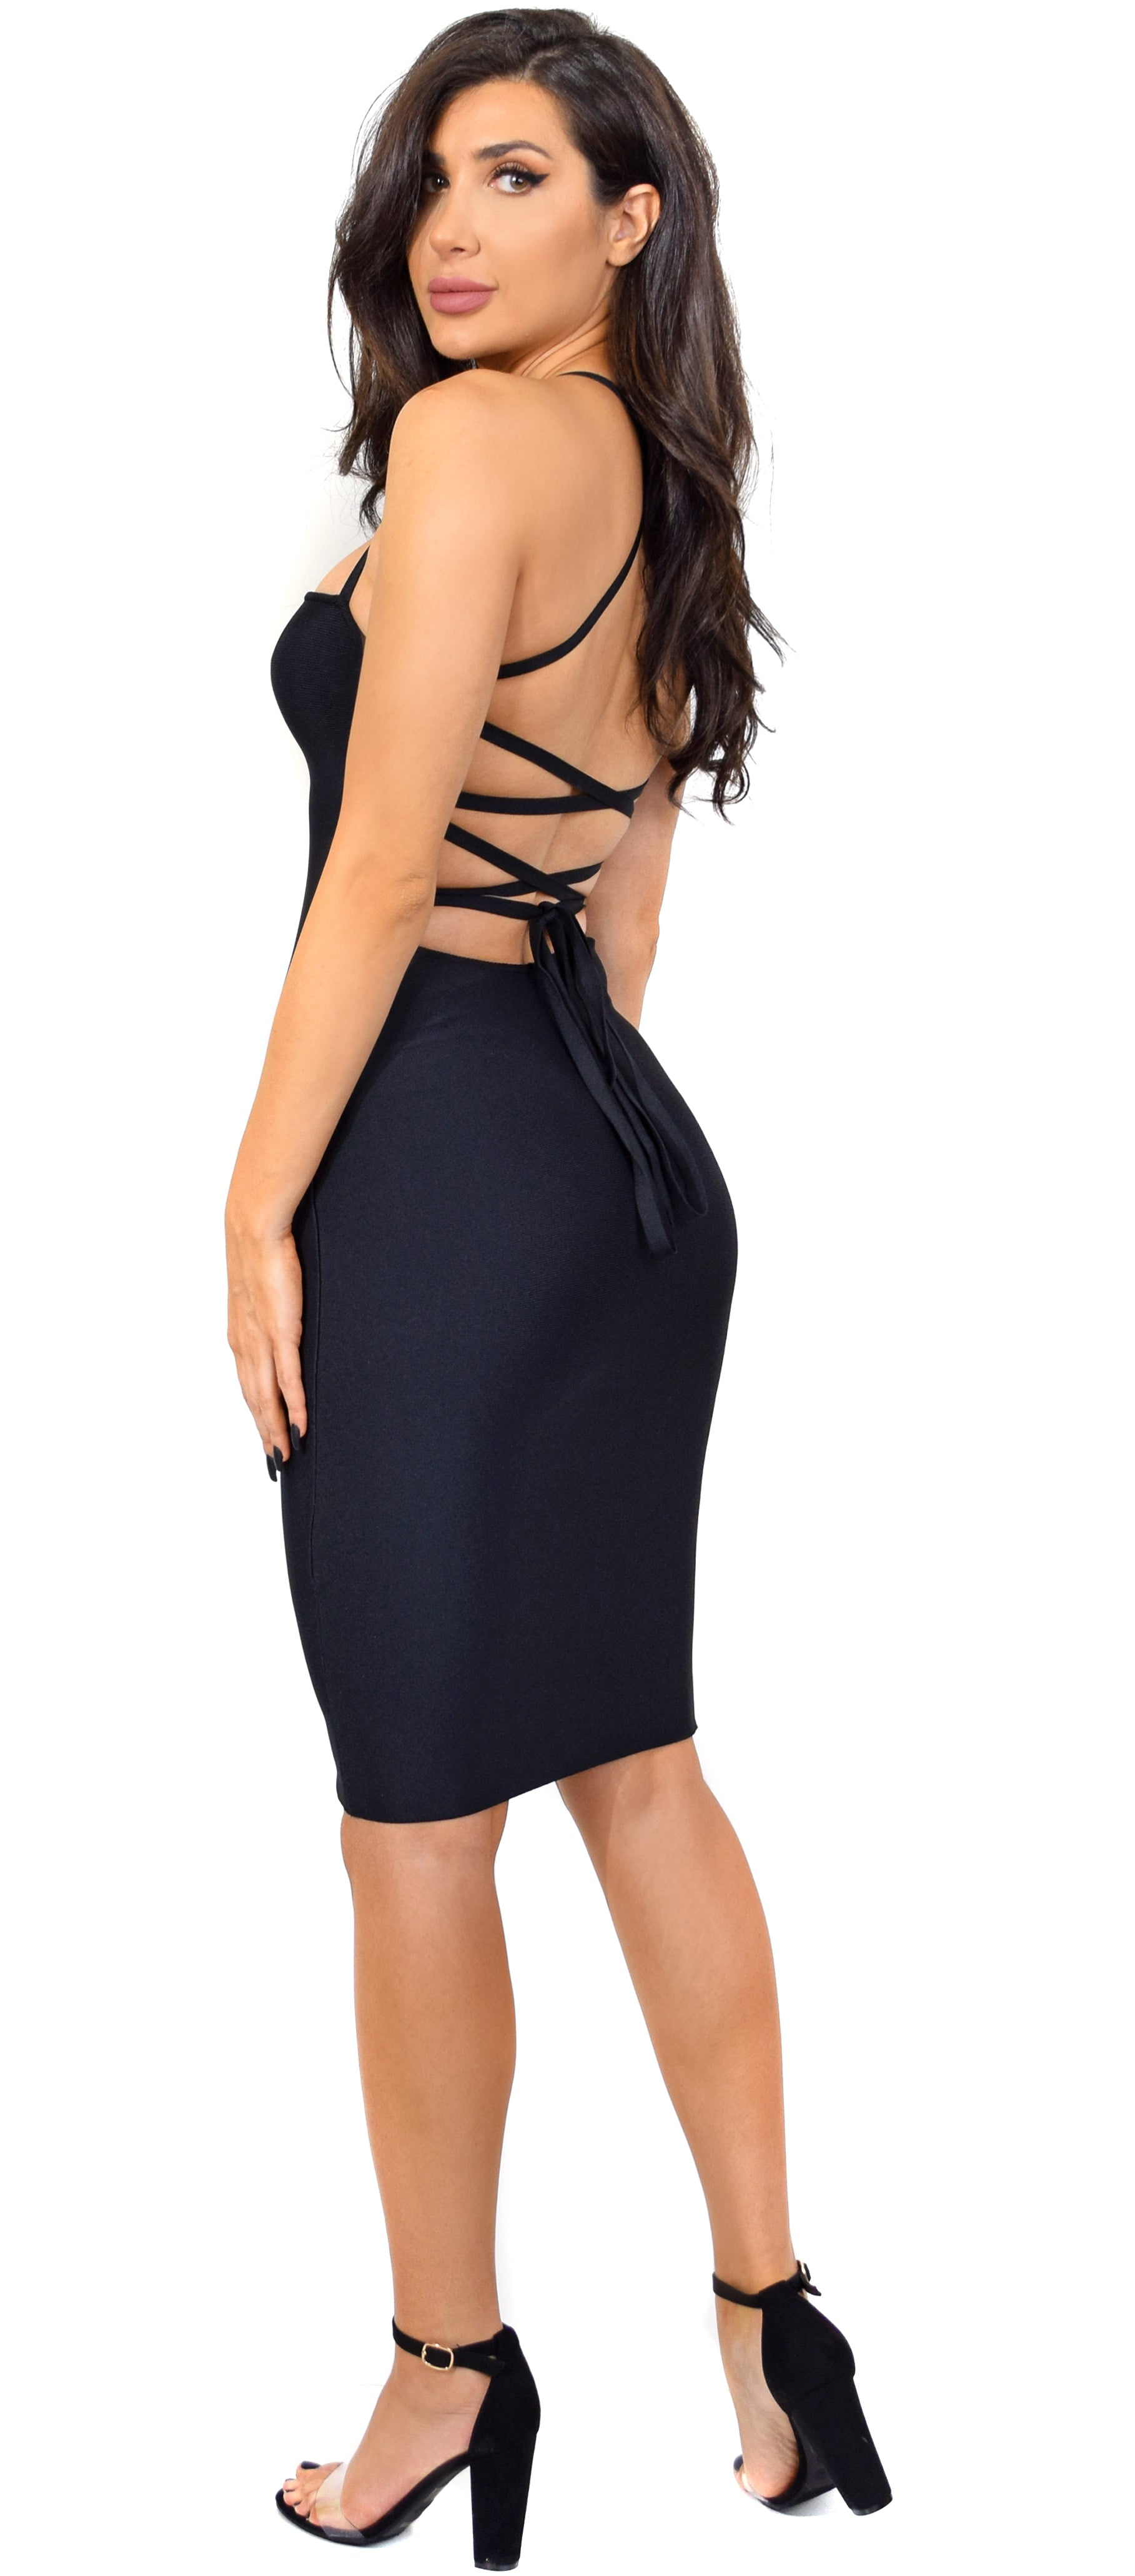 Maybelle Black Cross Back Bandage Dress - Emprada